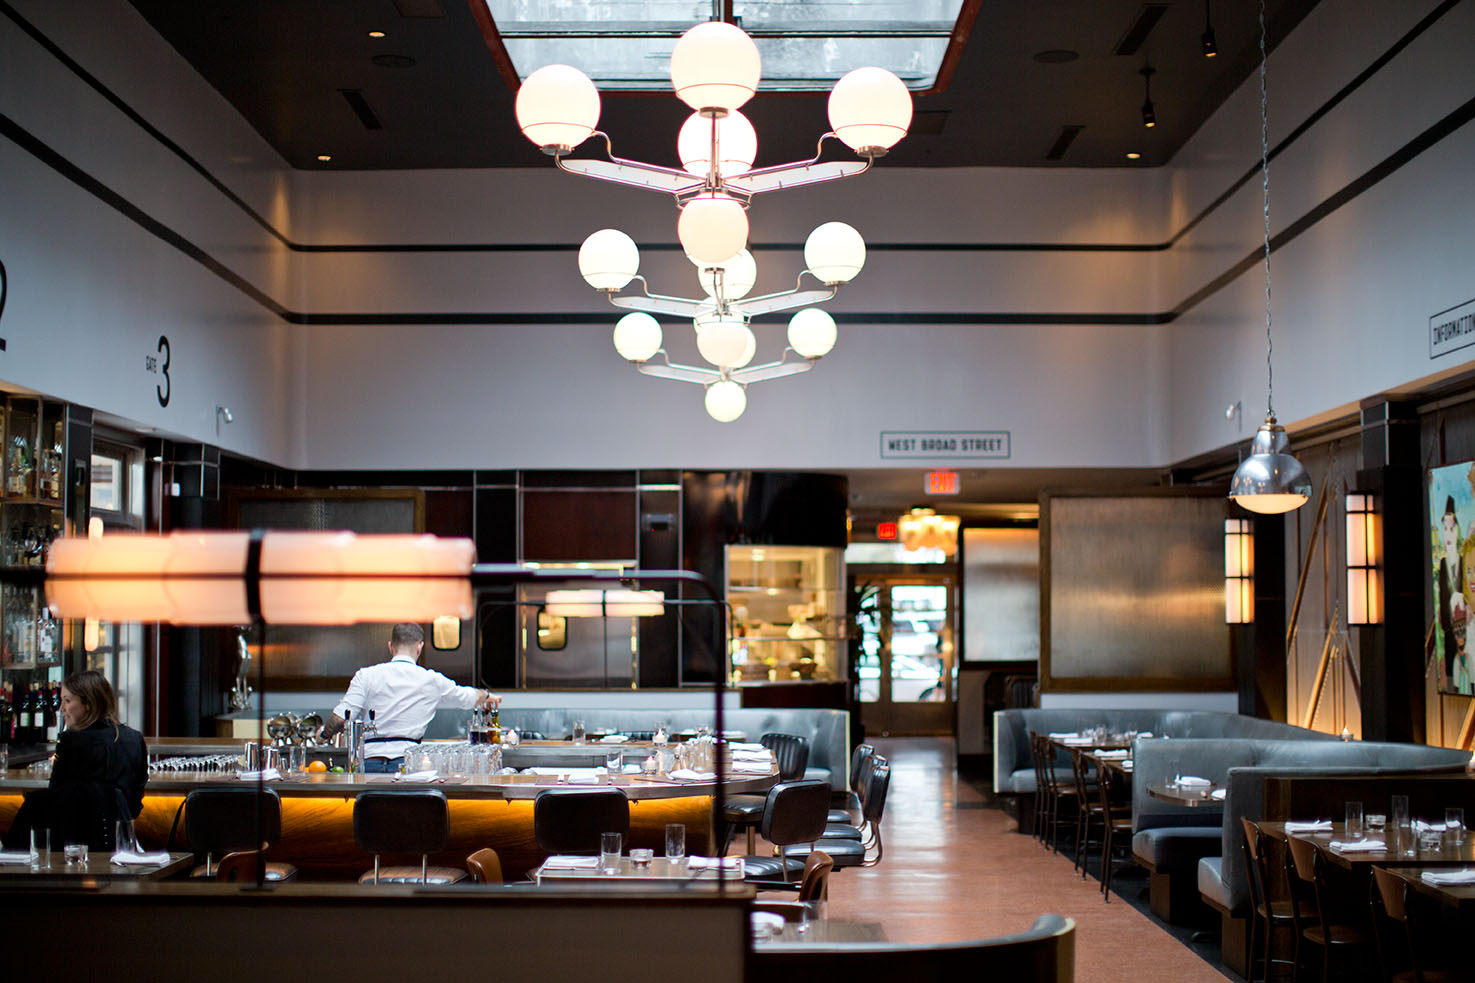 The 15 Most Beautiful Restaurants of 2015